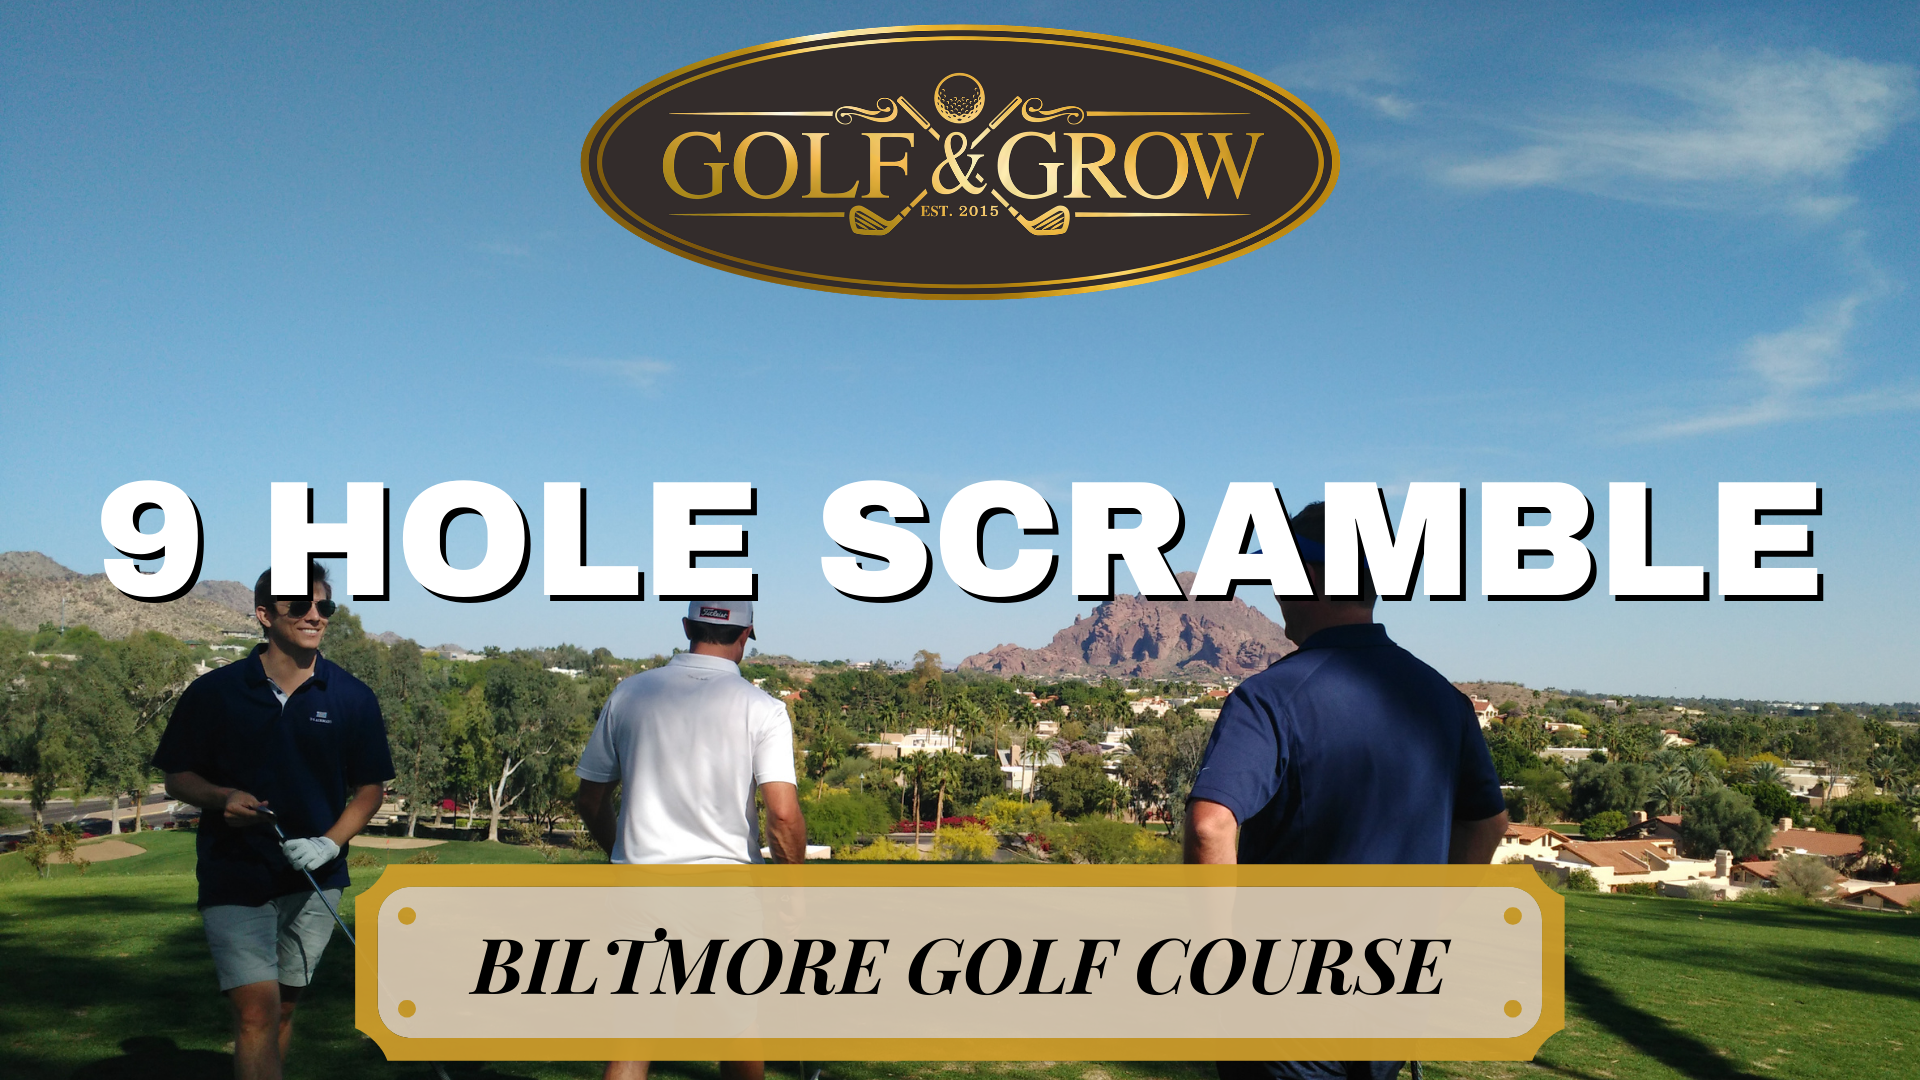 golf and grow 9 hole scramble is the best way to play golf and network for your business